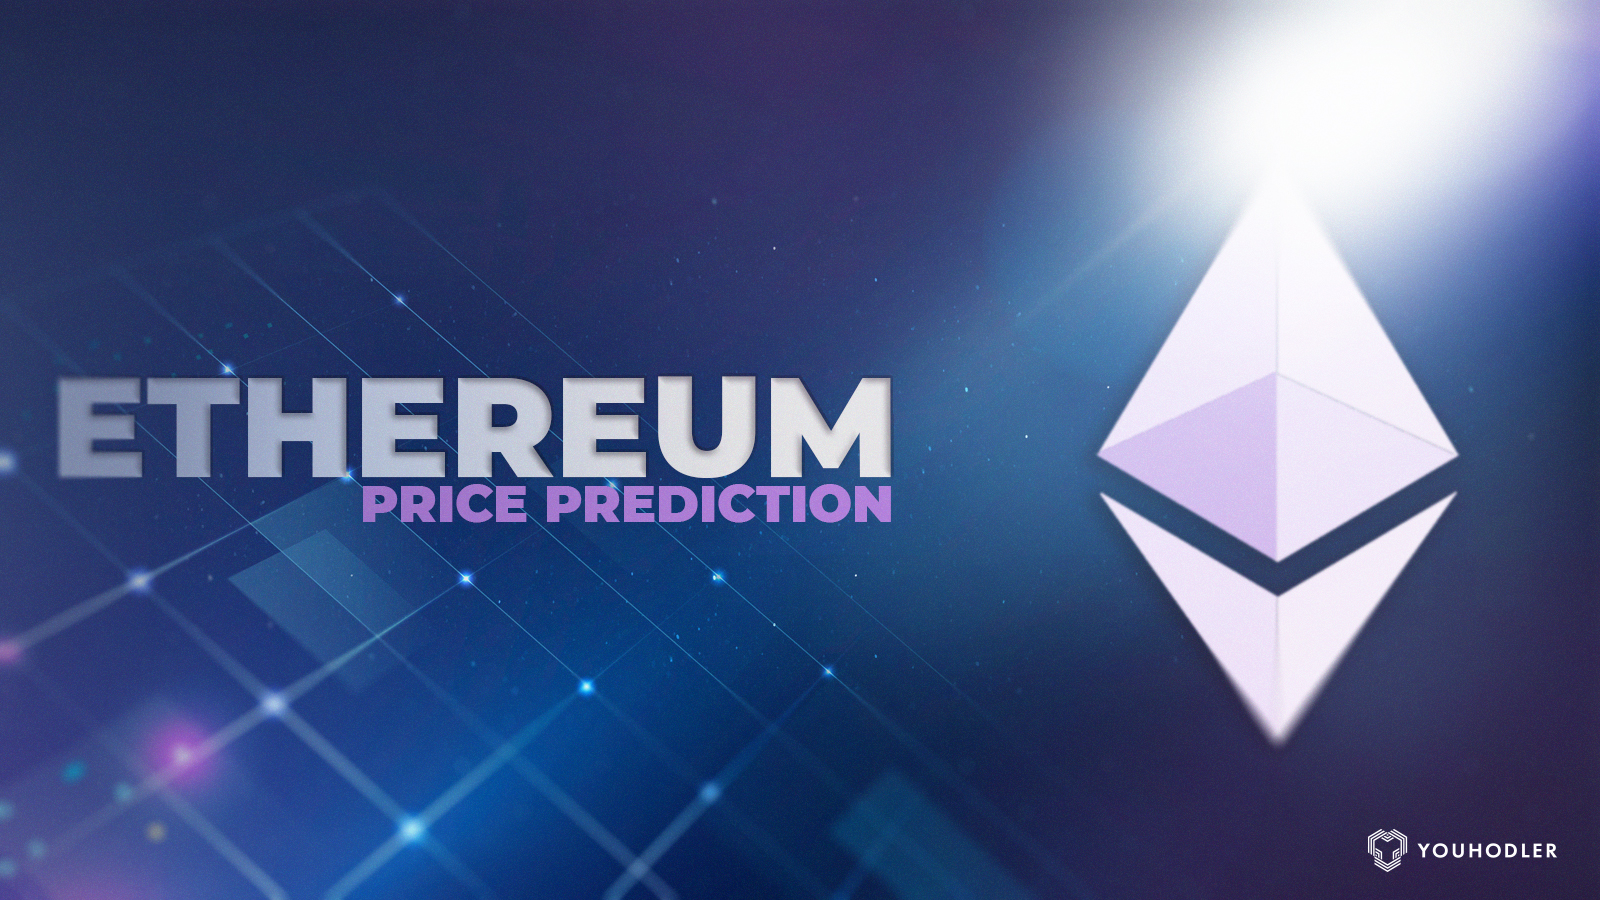 """an image with text saying """"ethereum price prediction"""